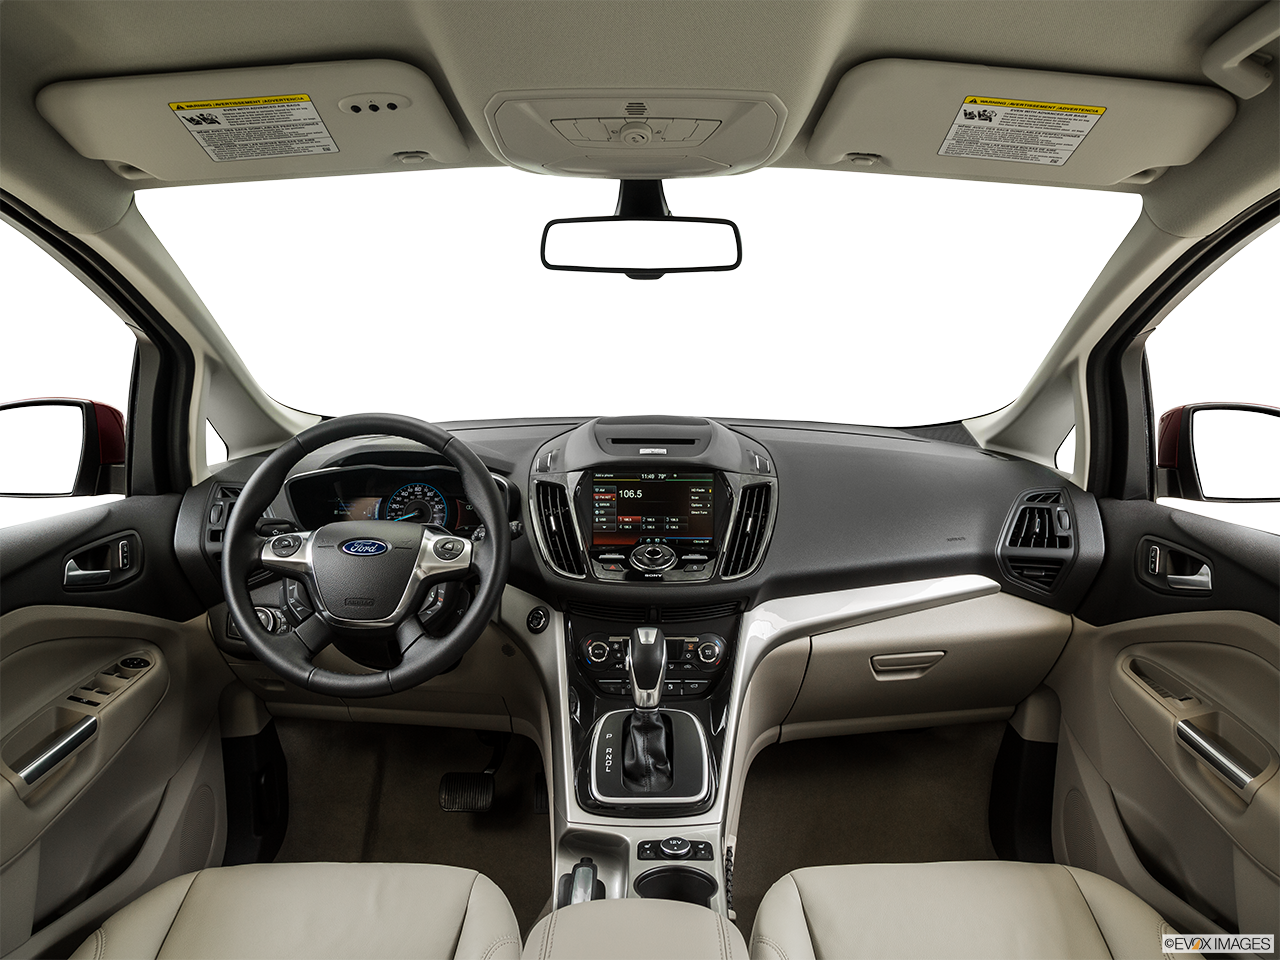 Interior View Of 2015 Ford C-Max in Tulsa